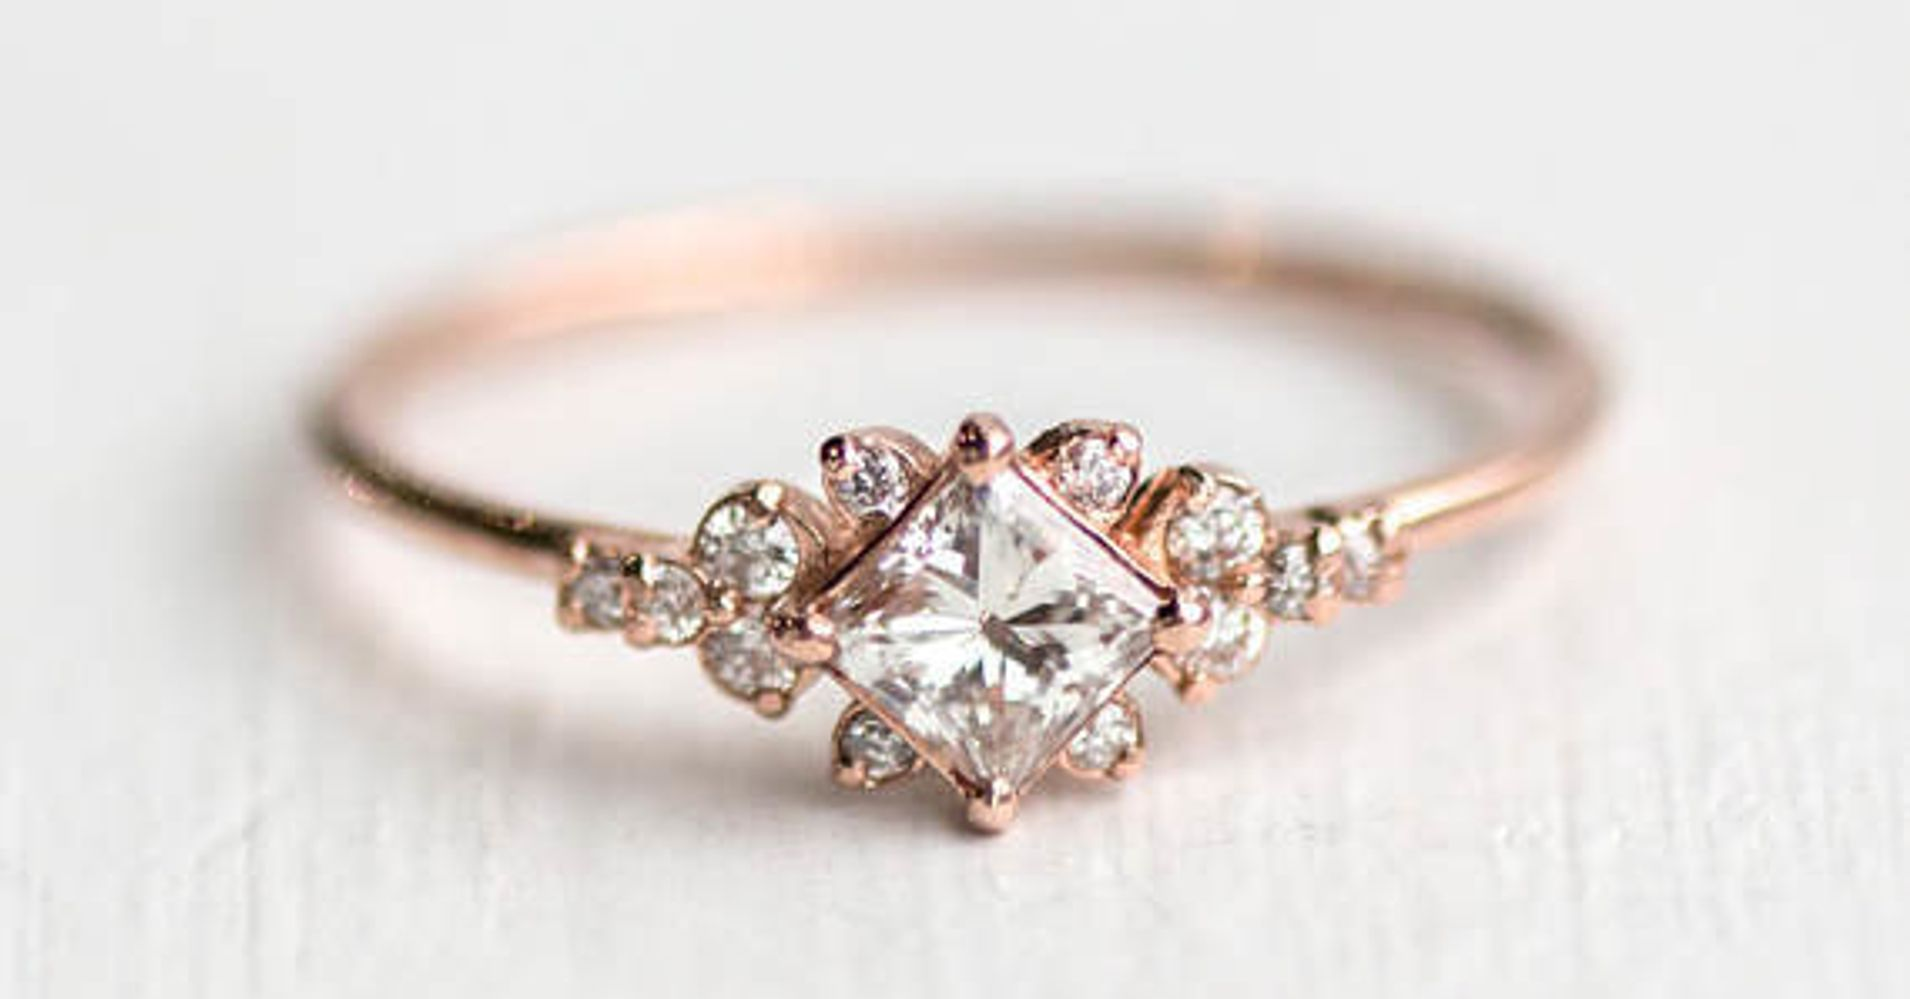 16 Rose Gold Engagement Rings So Pretty, They'll Make You Blush  Huffpost